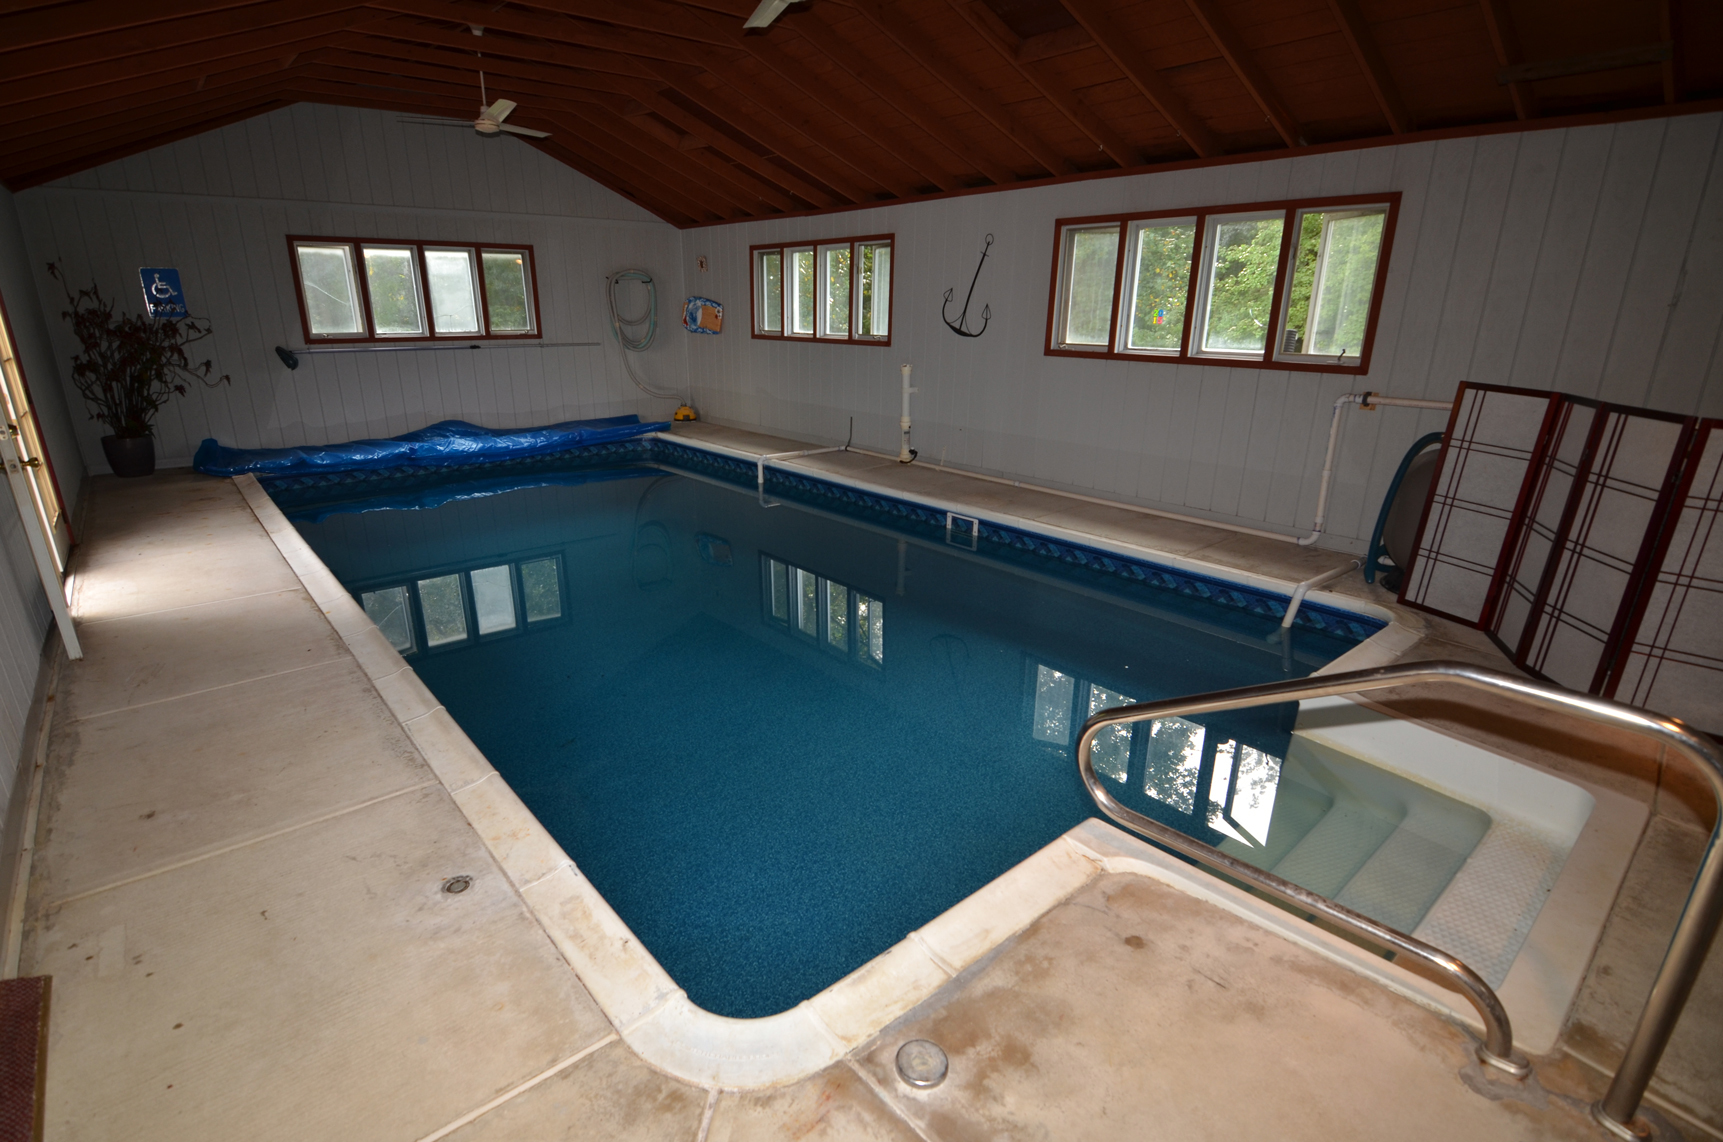 Indoor pool at 26 Cromwell Dr in Chesterfield, NJ